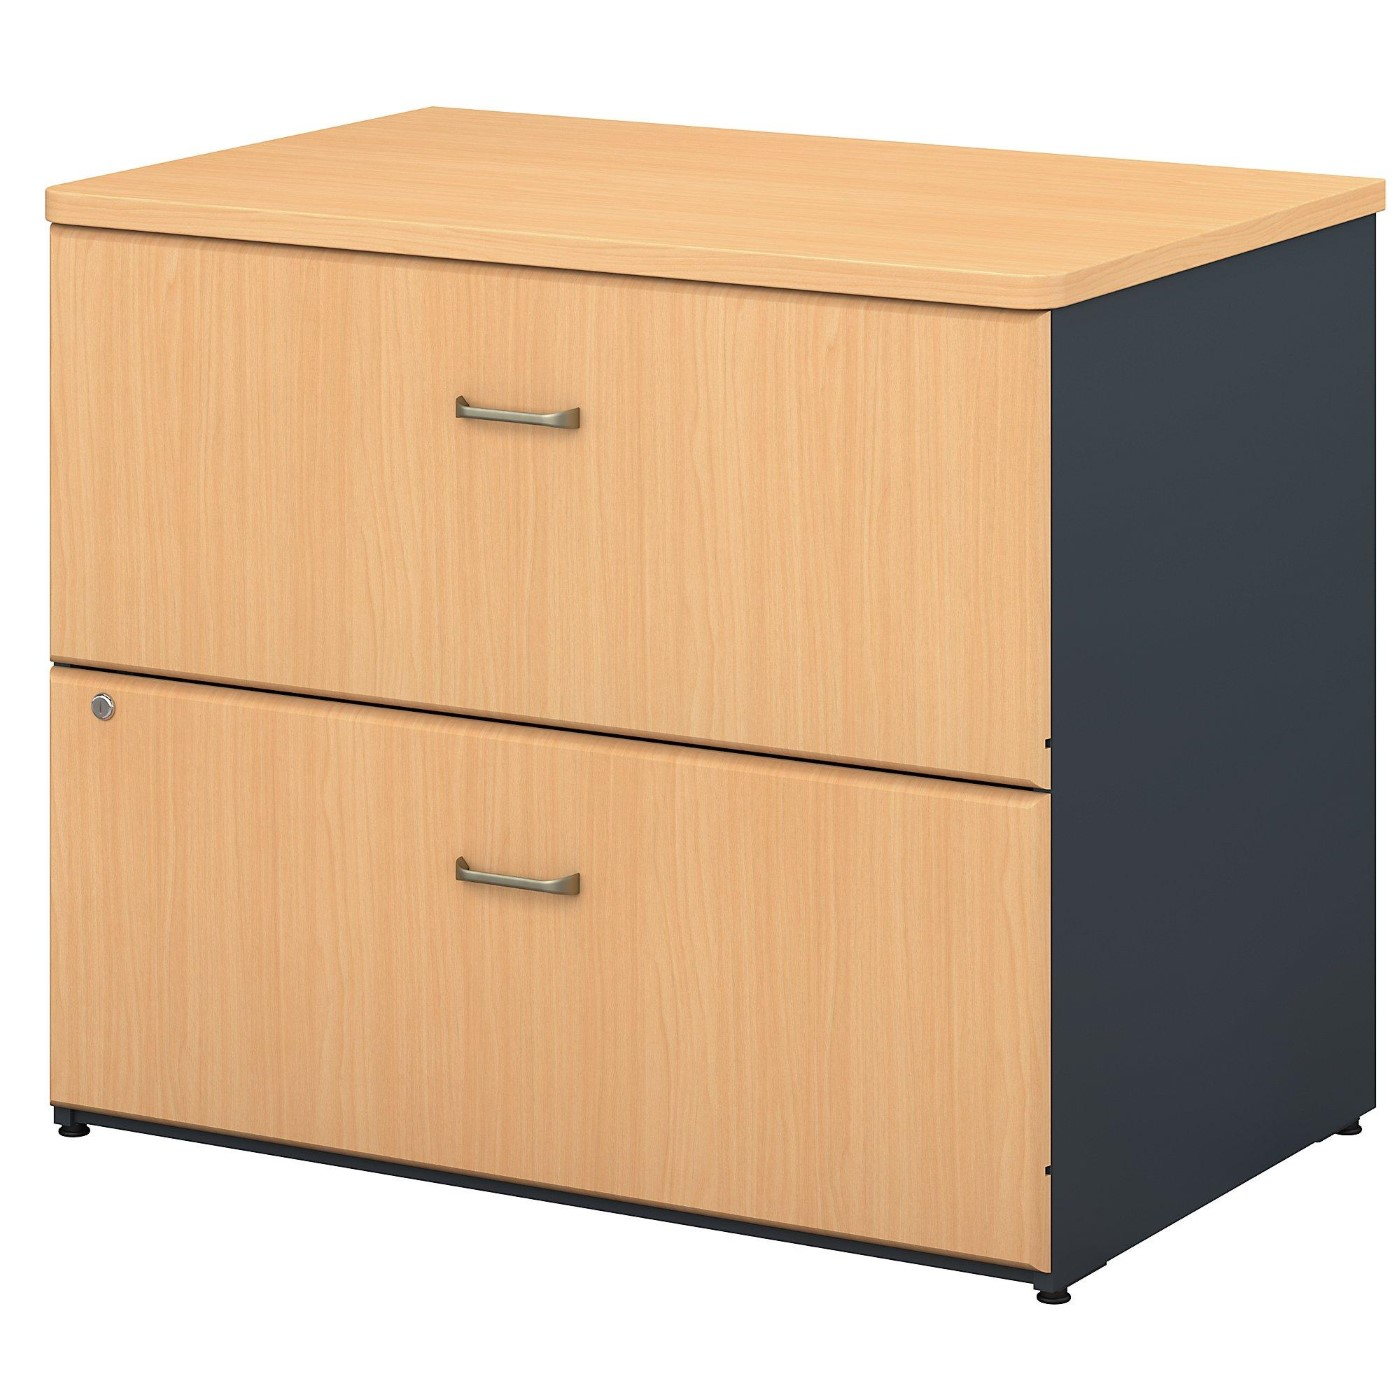 <font color=#c60><b>BUSH BUSINESS FURNITURE SERIES A 36W LATERAL FILE CABINET. FREE SHIPPING</font></b>